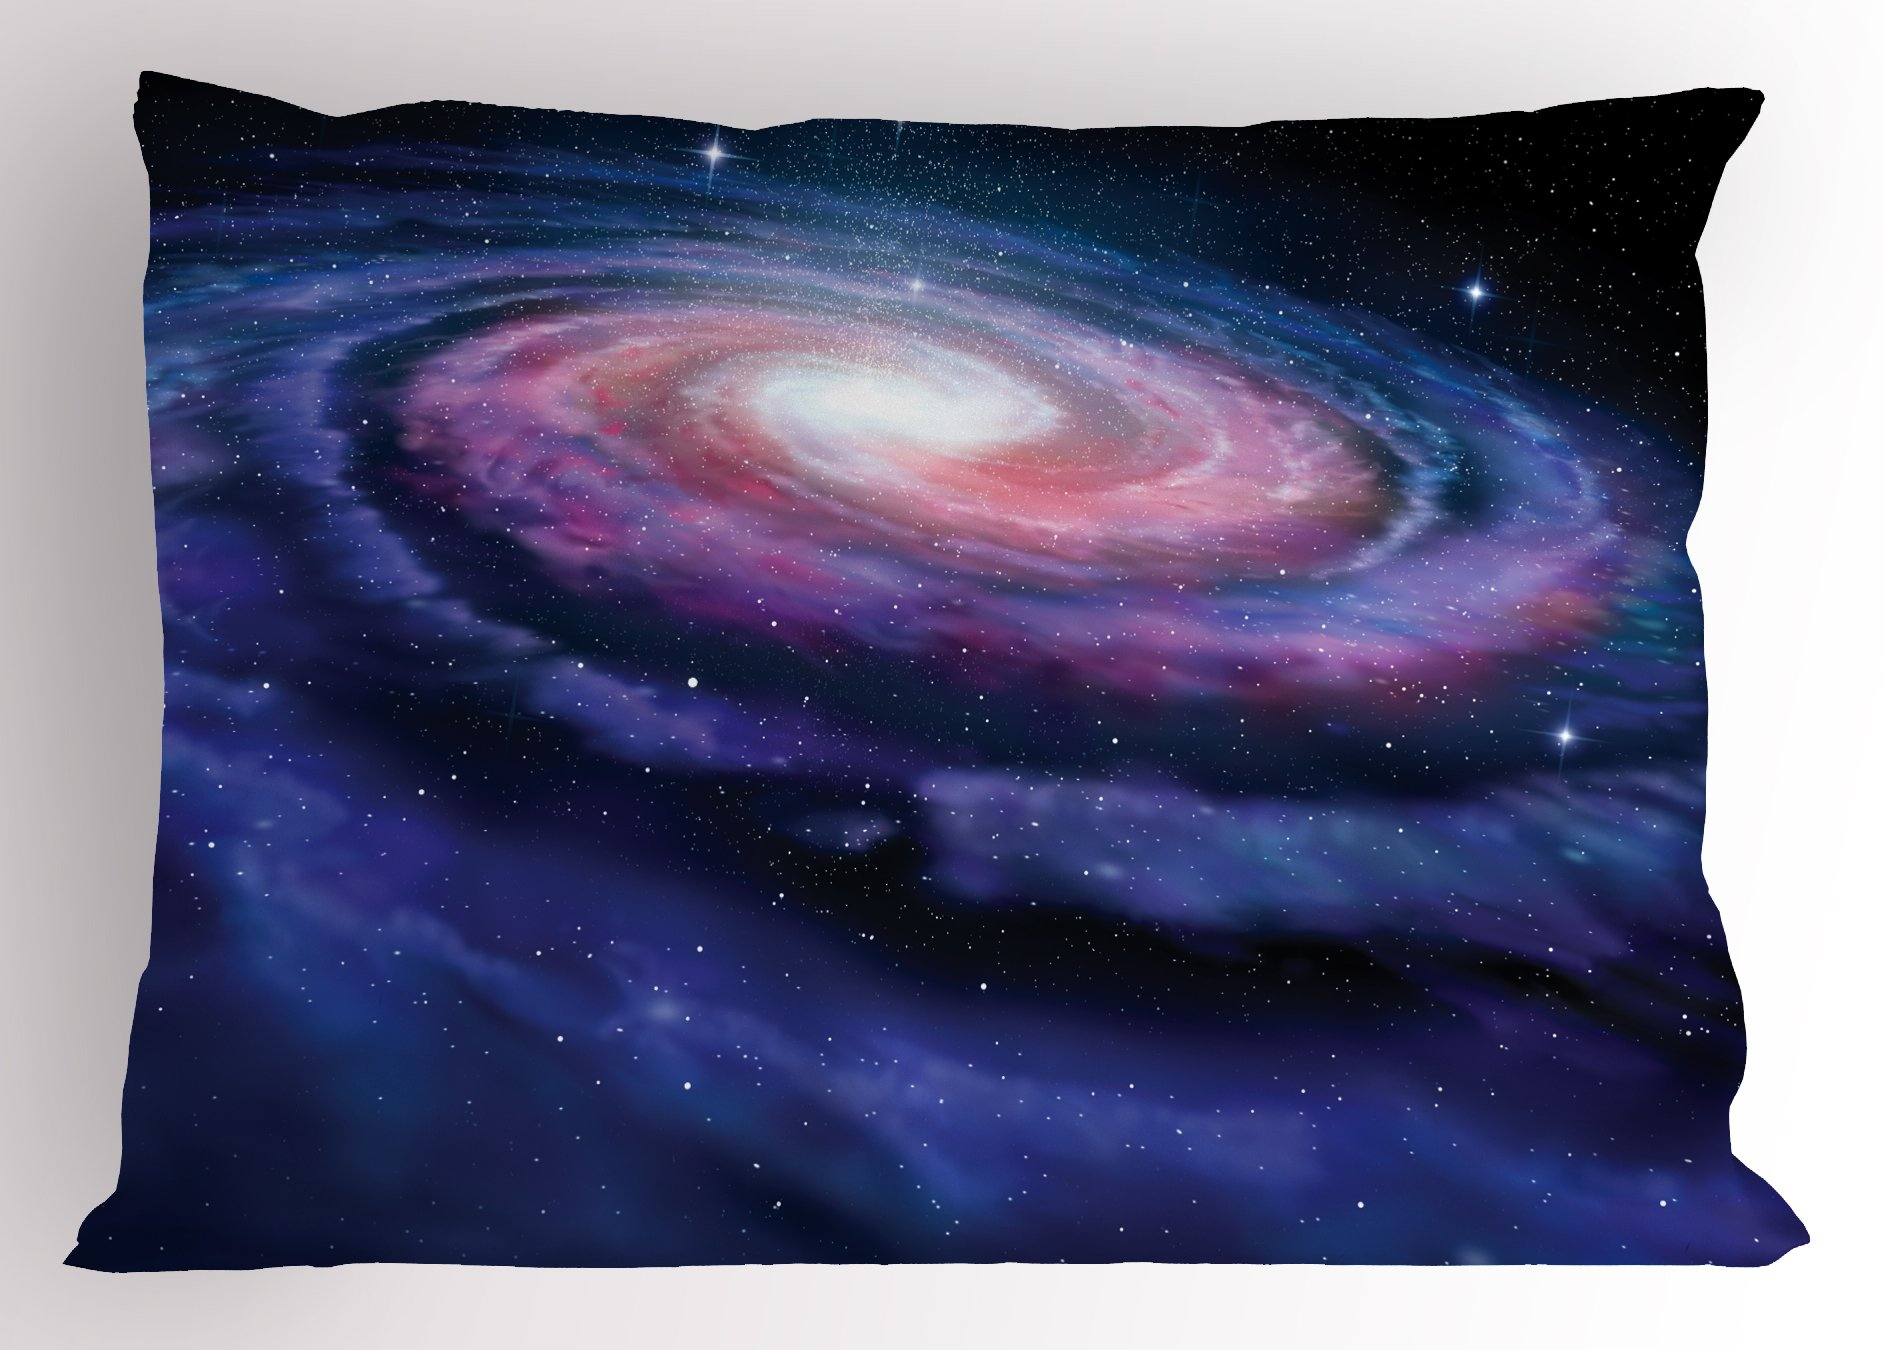 Lunarable Outer Space Pillow Sham, Spiral Cosmic Energy with Dark Nebula Cloud Burst Solar System Universe Image, Decorative Standard King Size Printed Pillowcase, 36 X 20 inches, Blue Purple